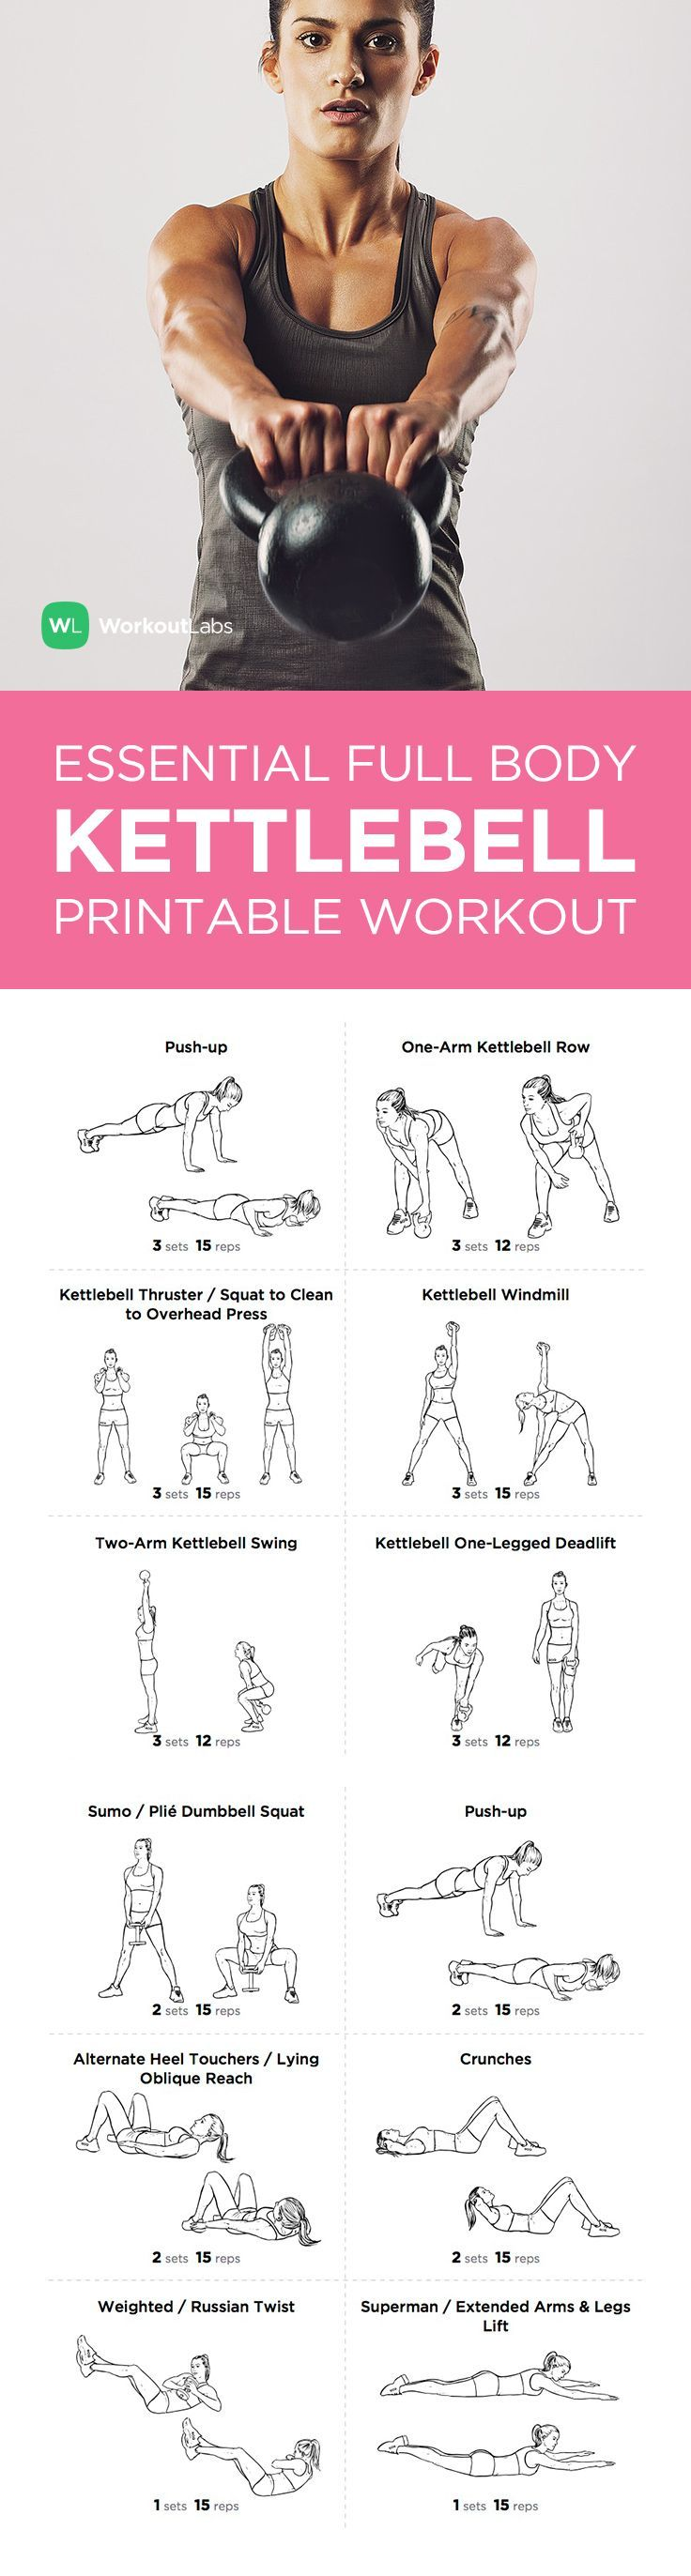 cool Essential Full Body Kettlebell Printable Workout for Men & Women